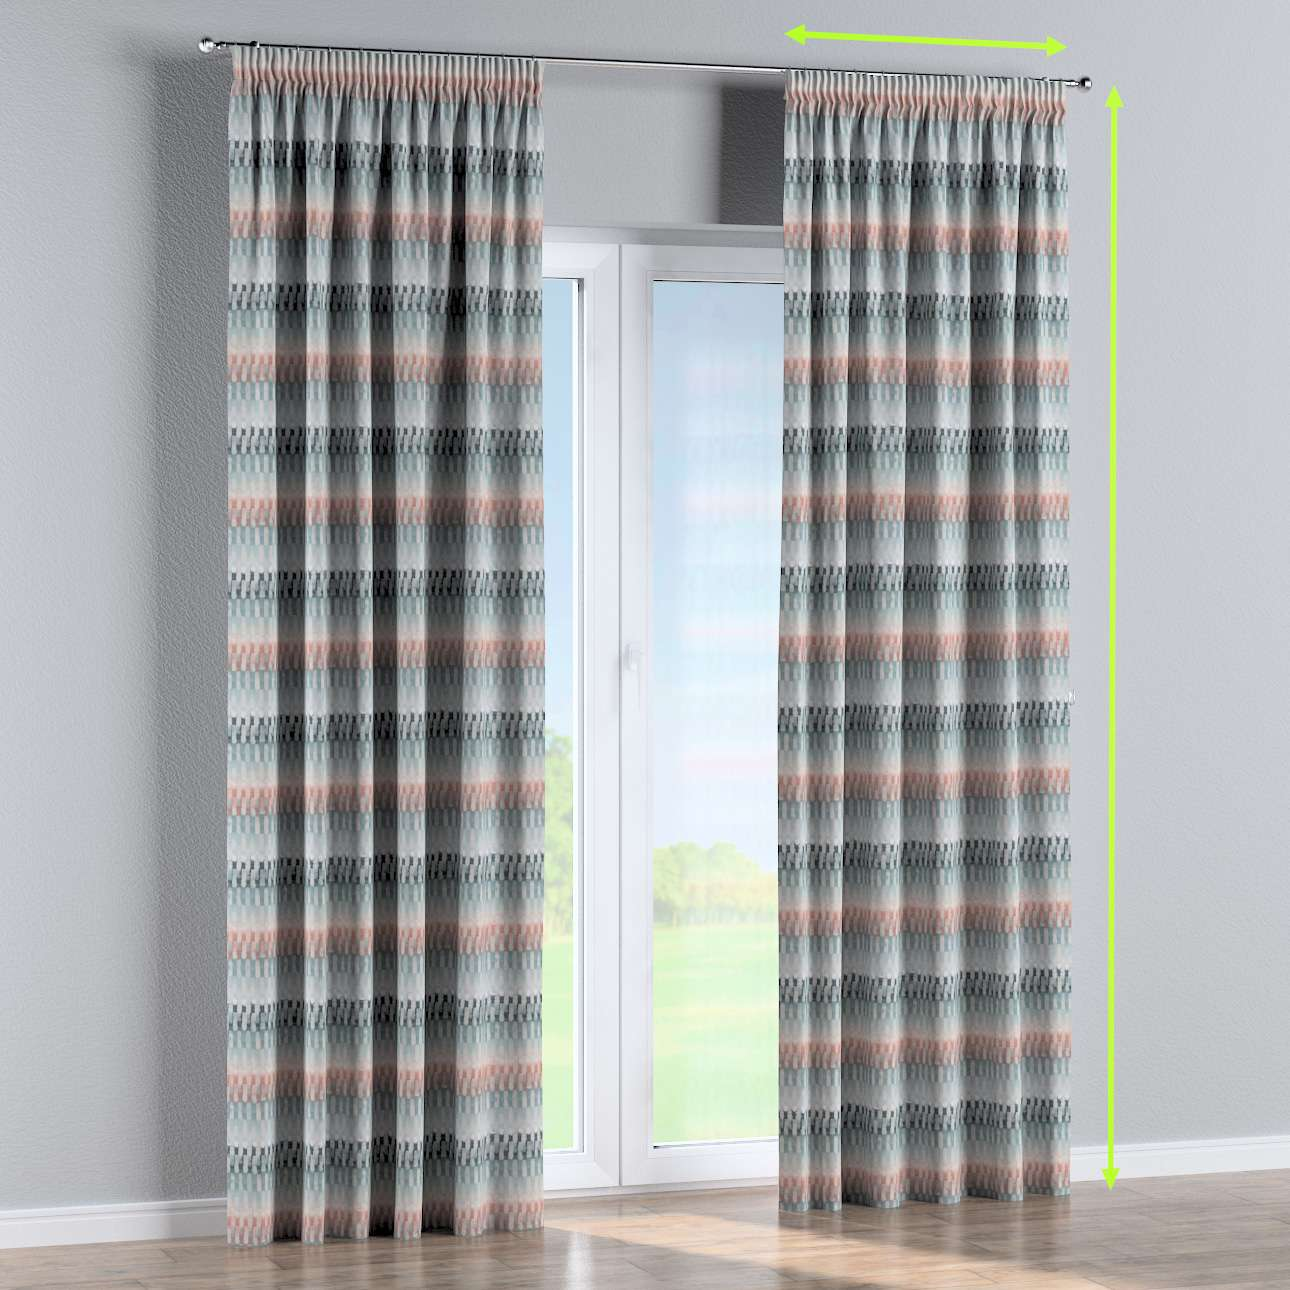 Pencil pleat curtains in collection Pastel Forest, fabric: 142-51